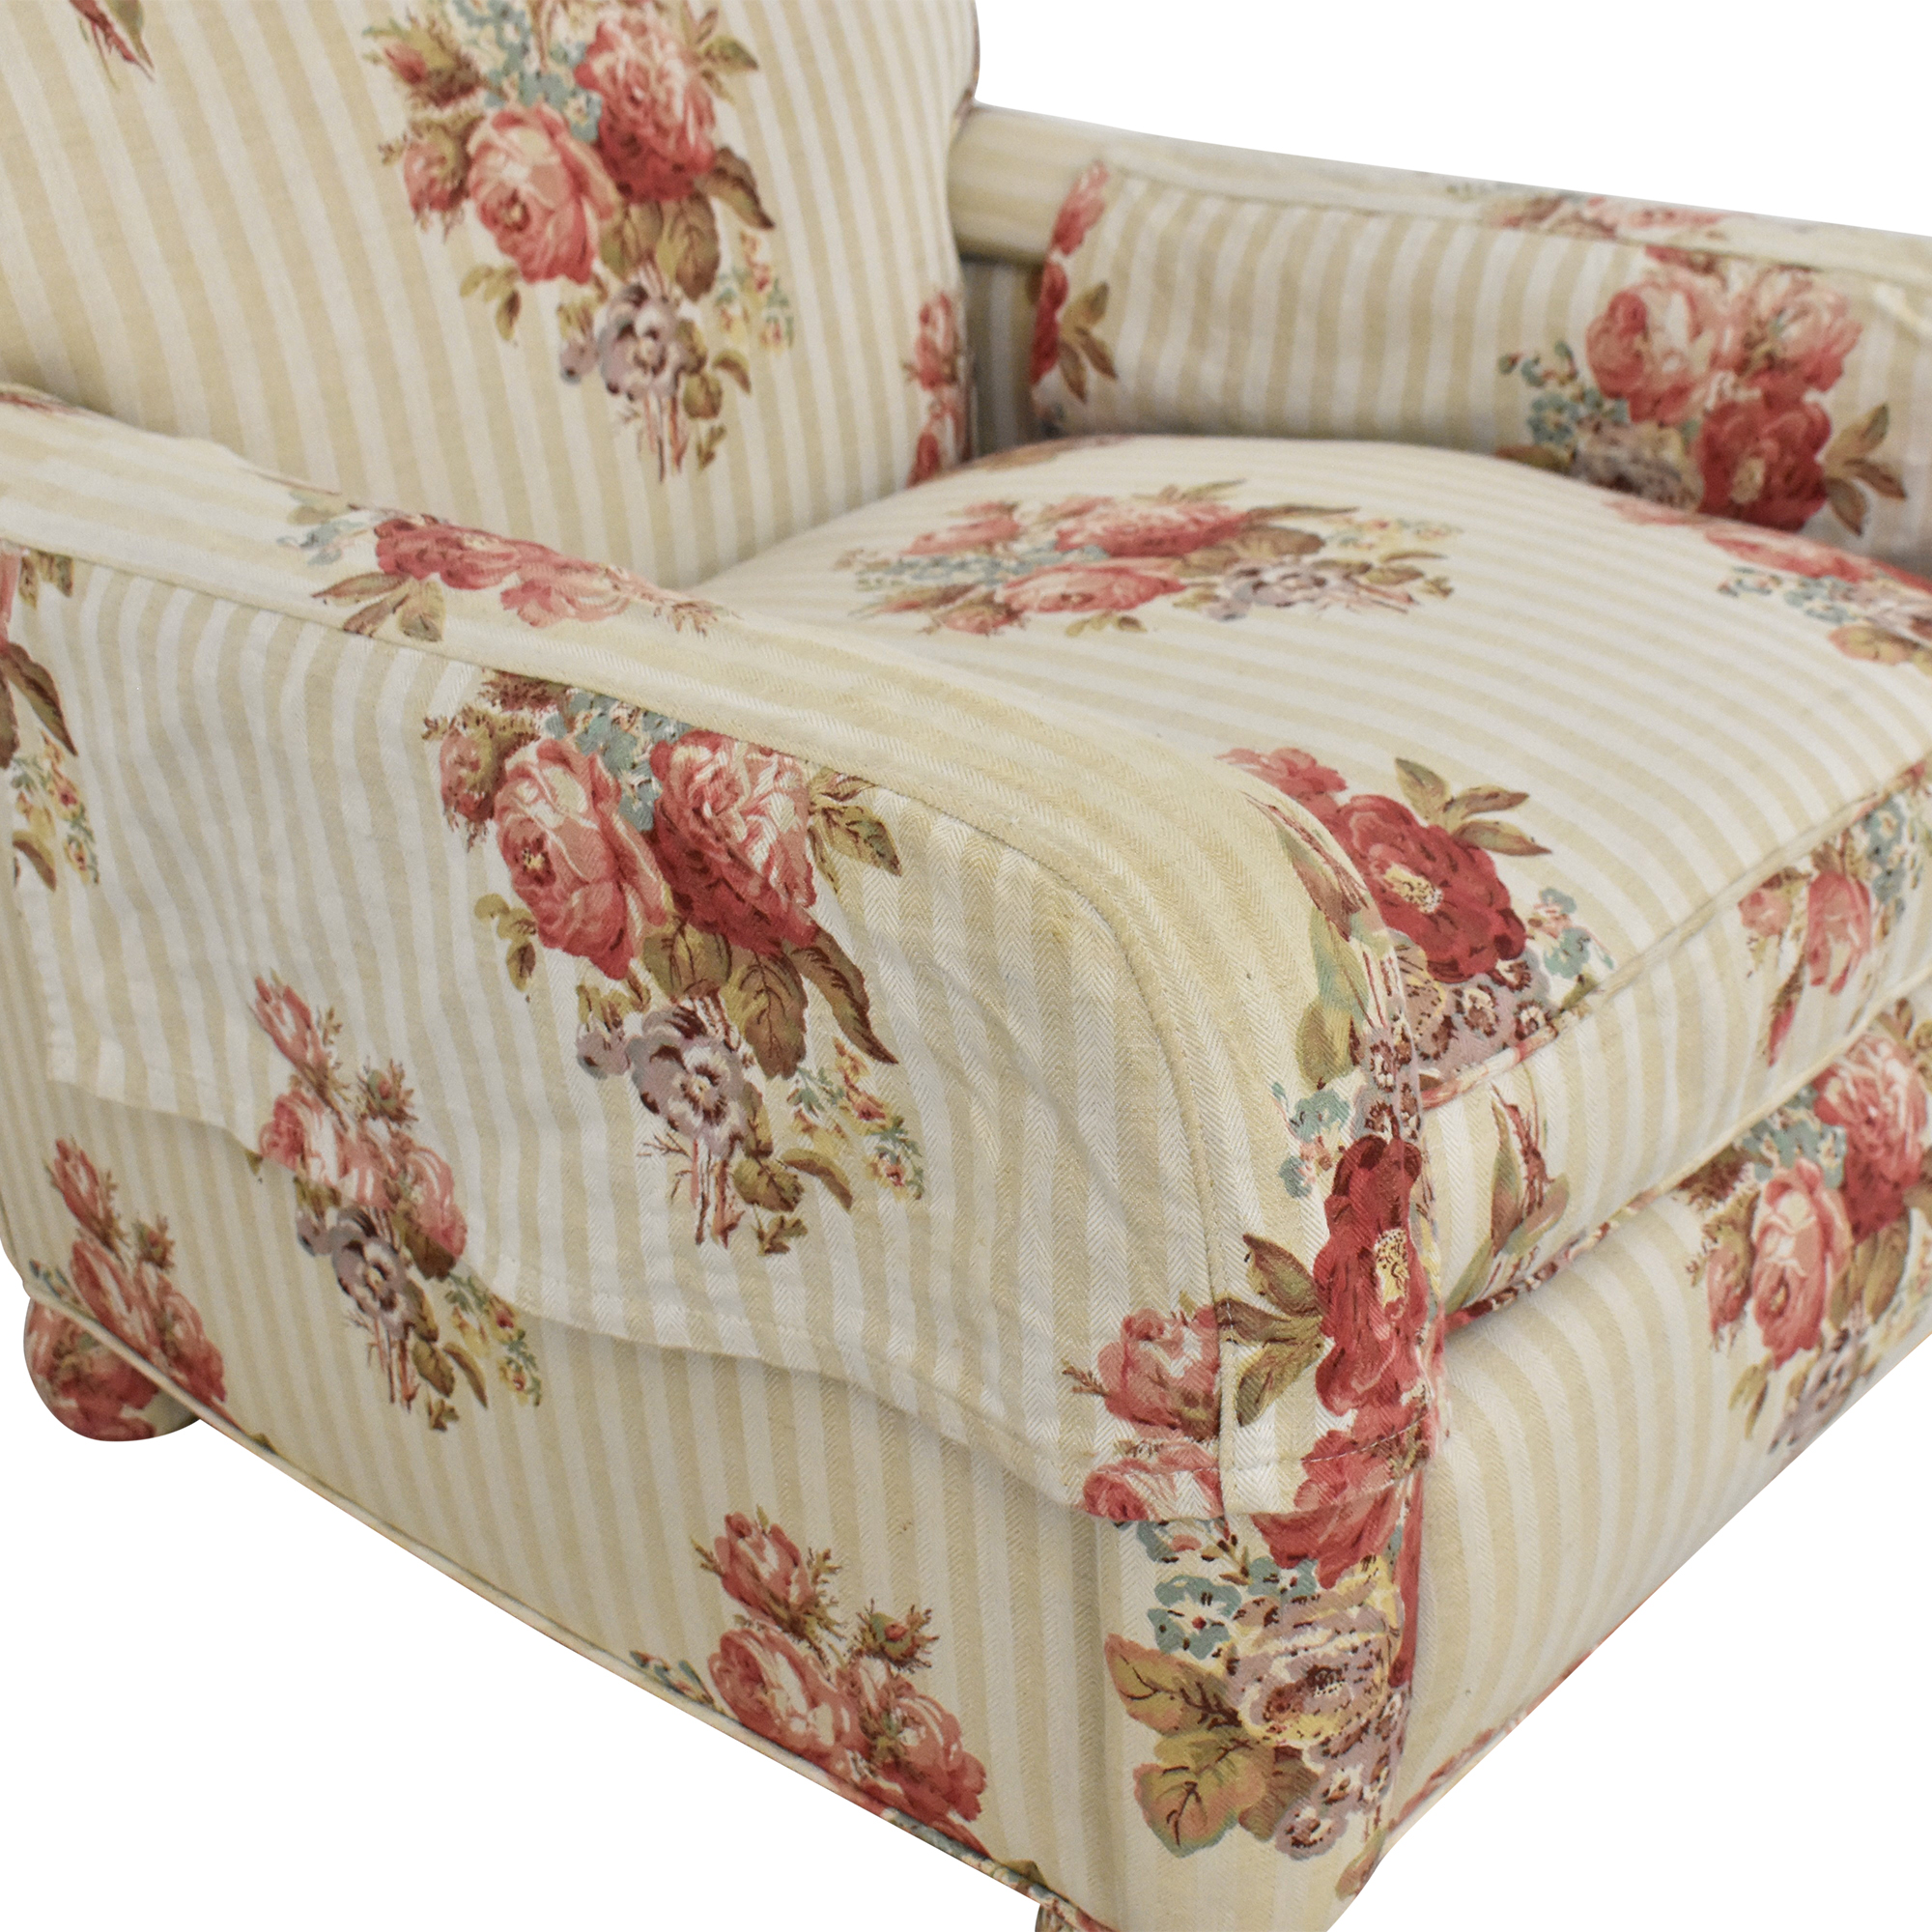 Hickory Chair Upholstered Club Chair Hickory Chair